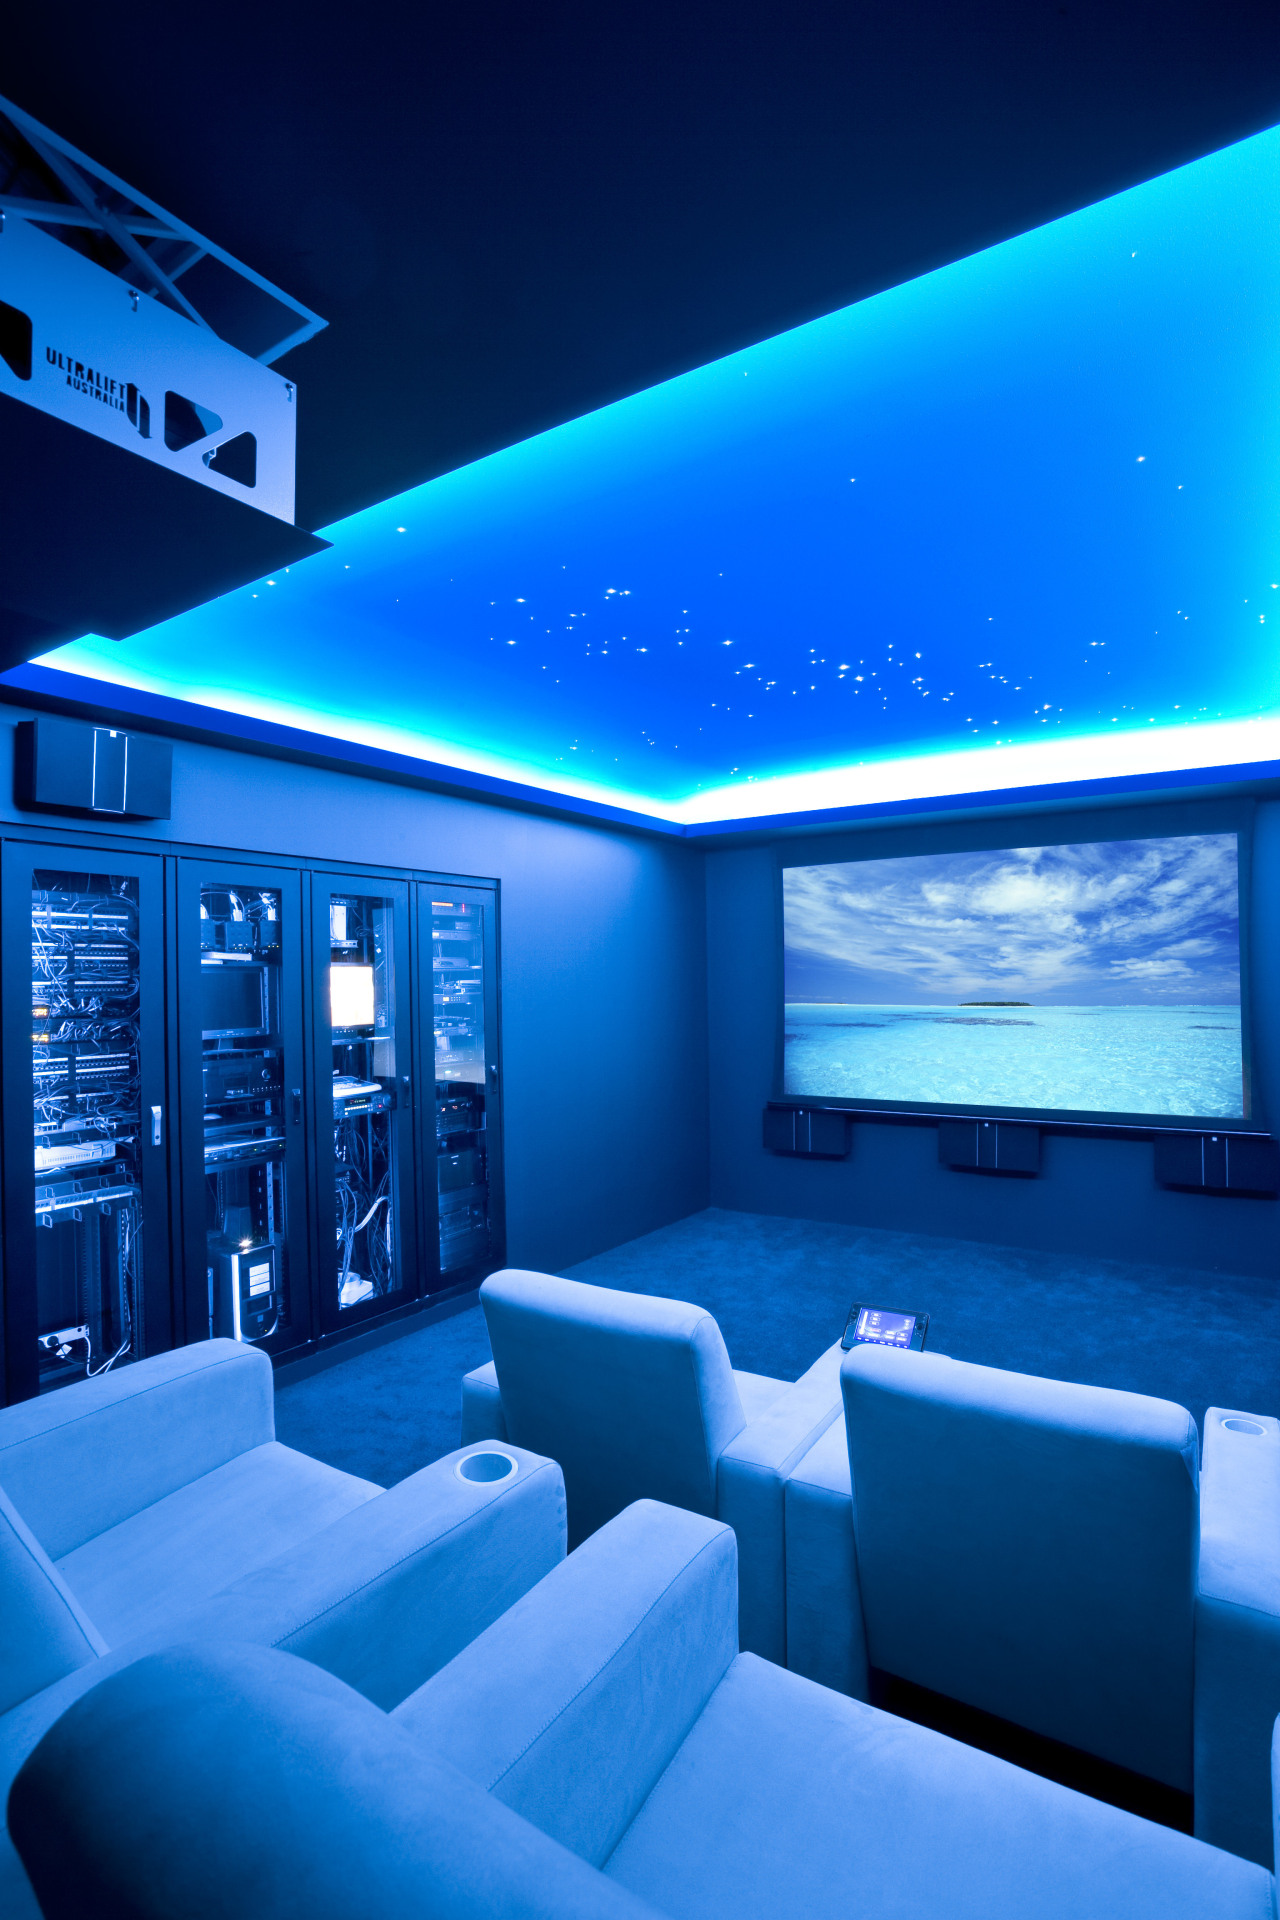 View of home cinema with projector screen, audiovisual architecture, blue, ceiling, display device, interior design, light, lighting, sky, technology, blue, teal